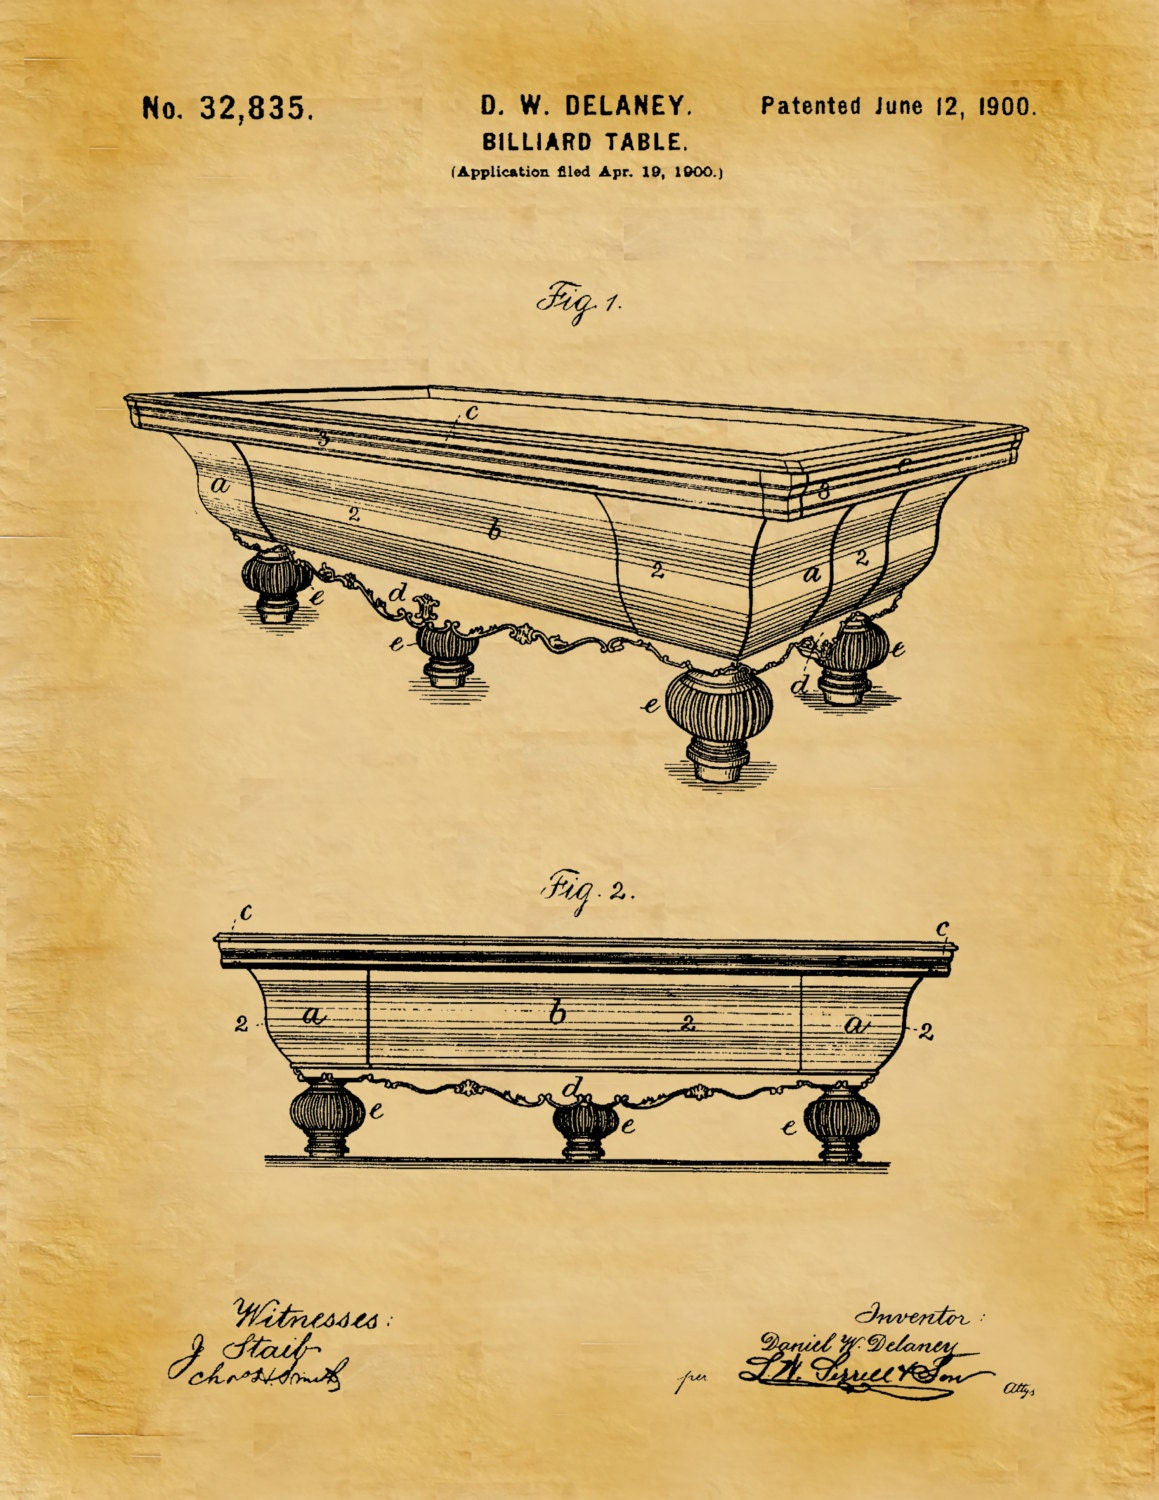 Dorable Billiard Wall Decor Image Collection - All About Wallart ...